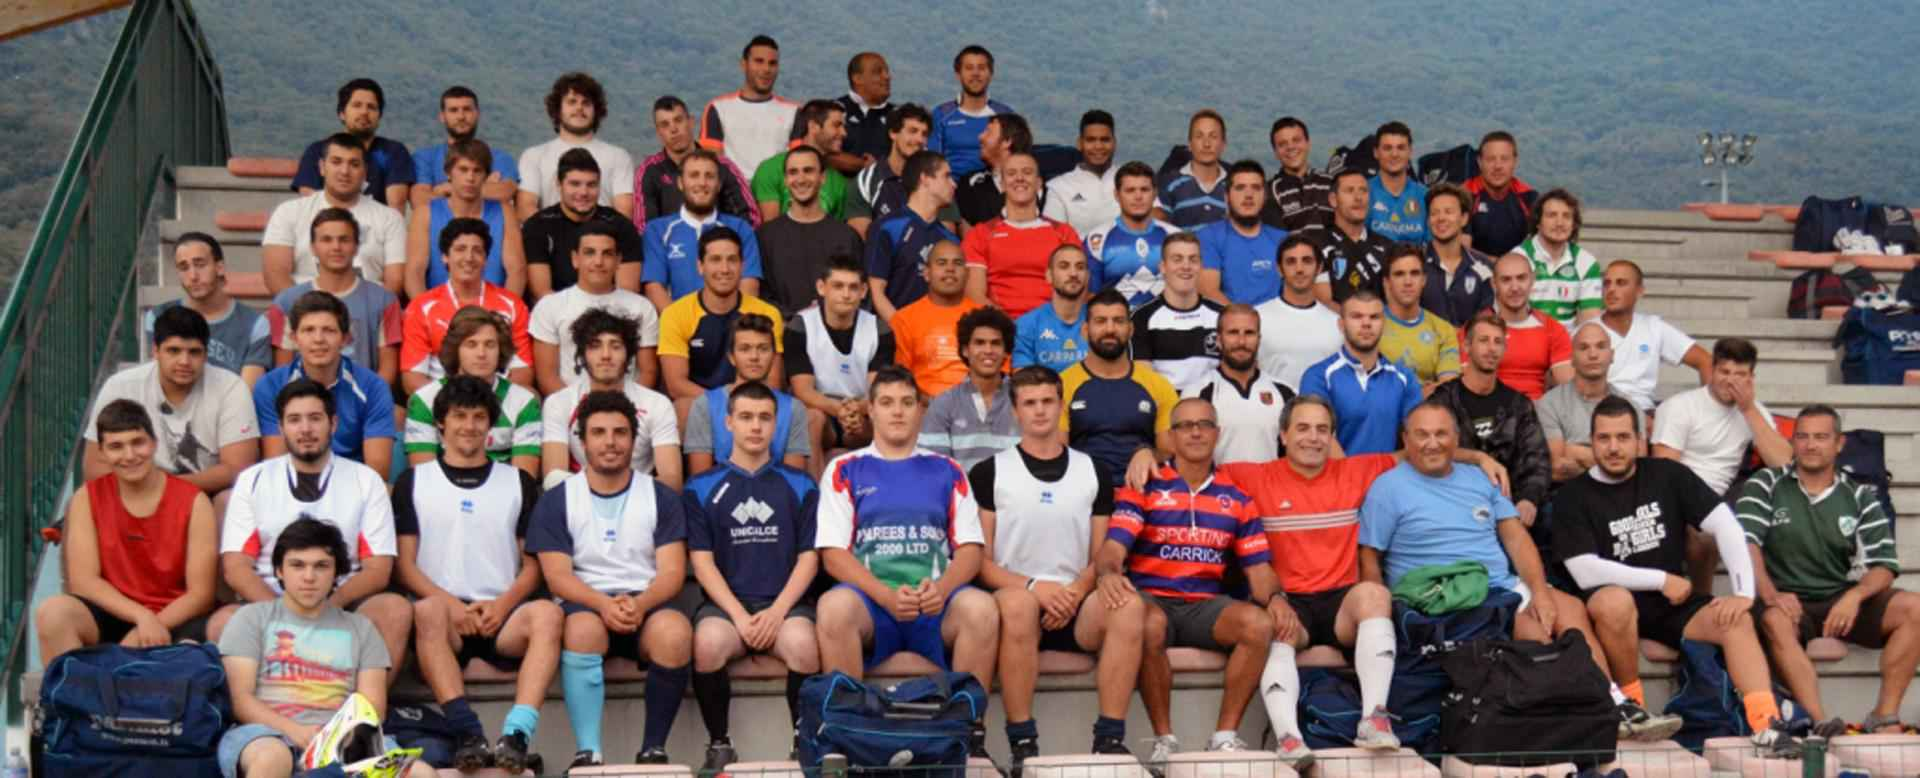 rugby lecco 2014 2015